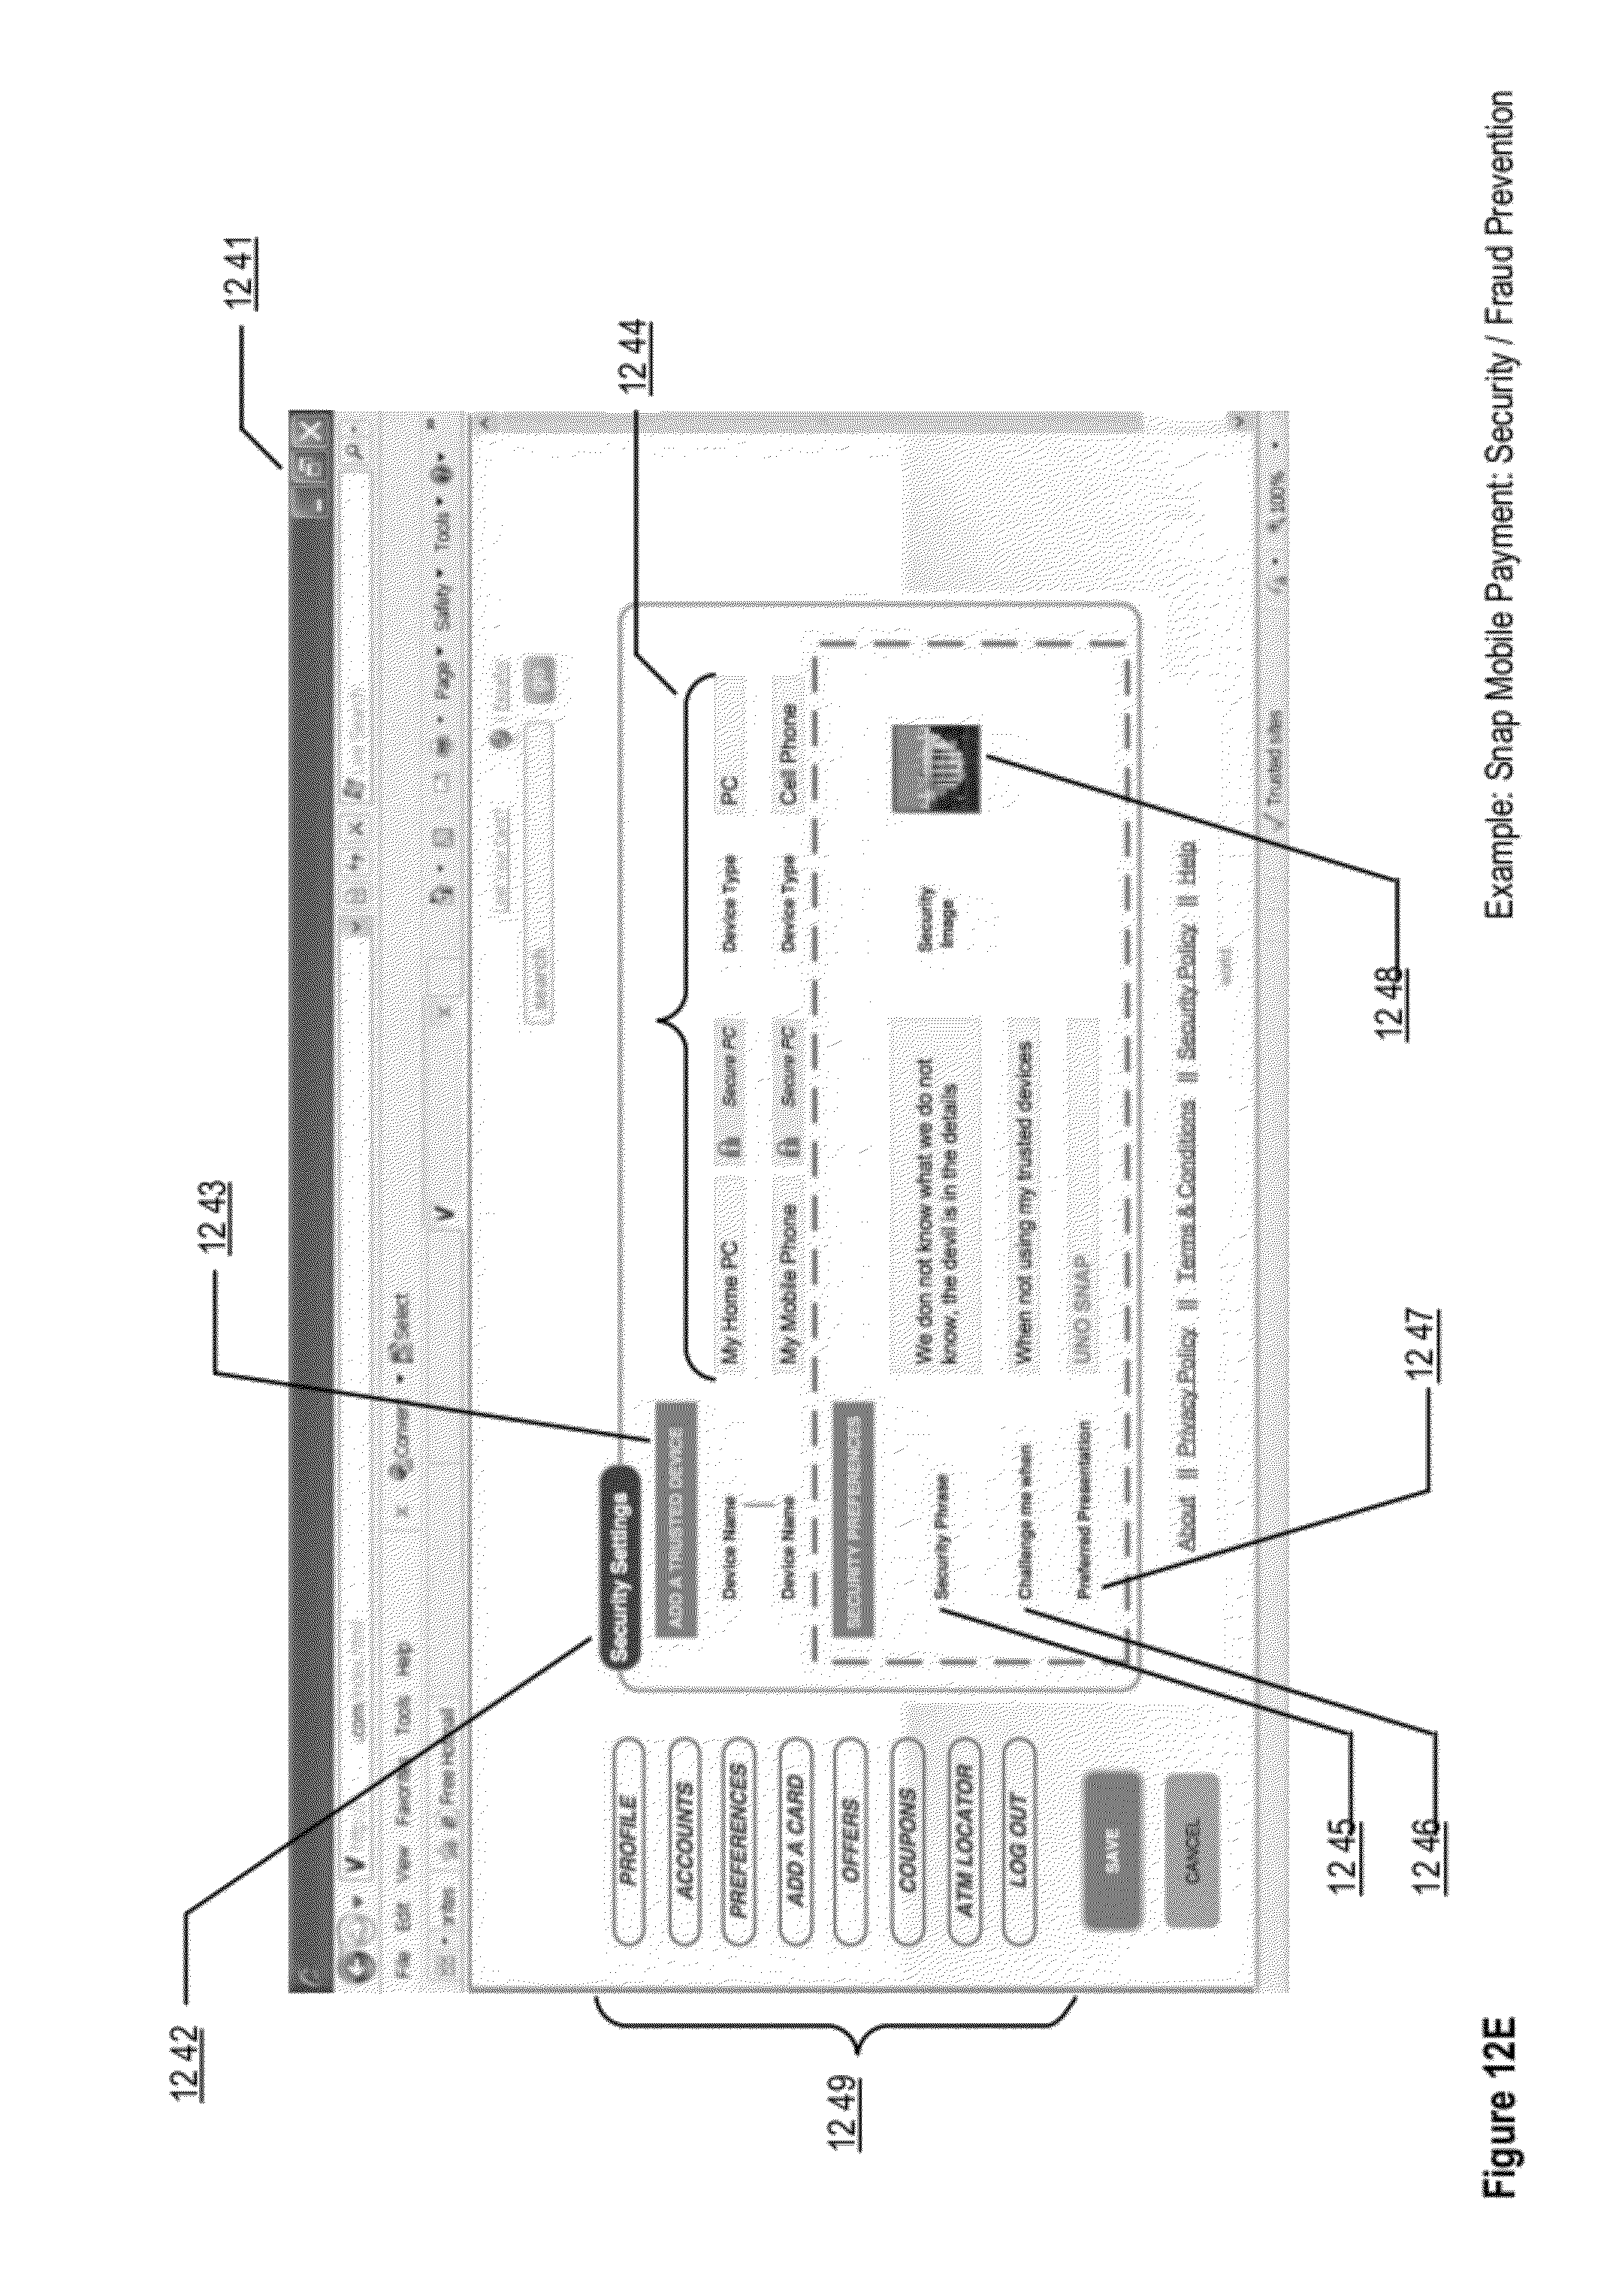 nook motherboard diagram patent us 20120253852a1  patent us 20120253852a1